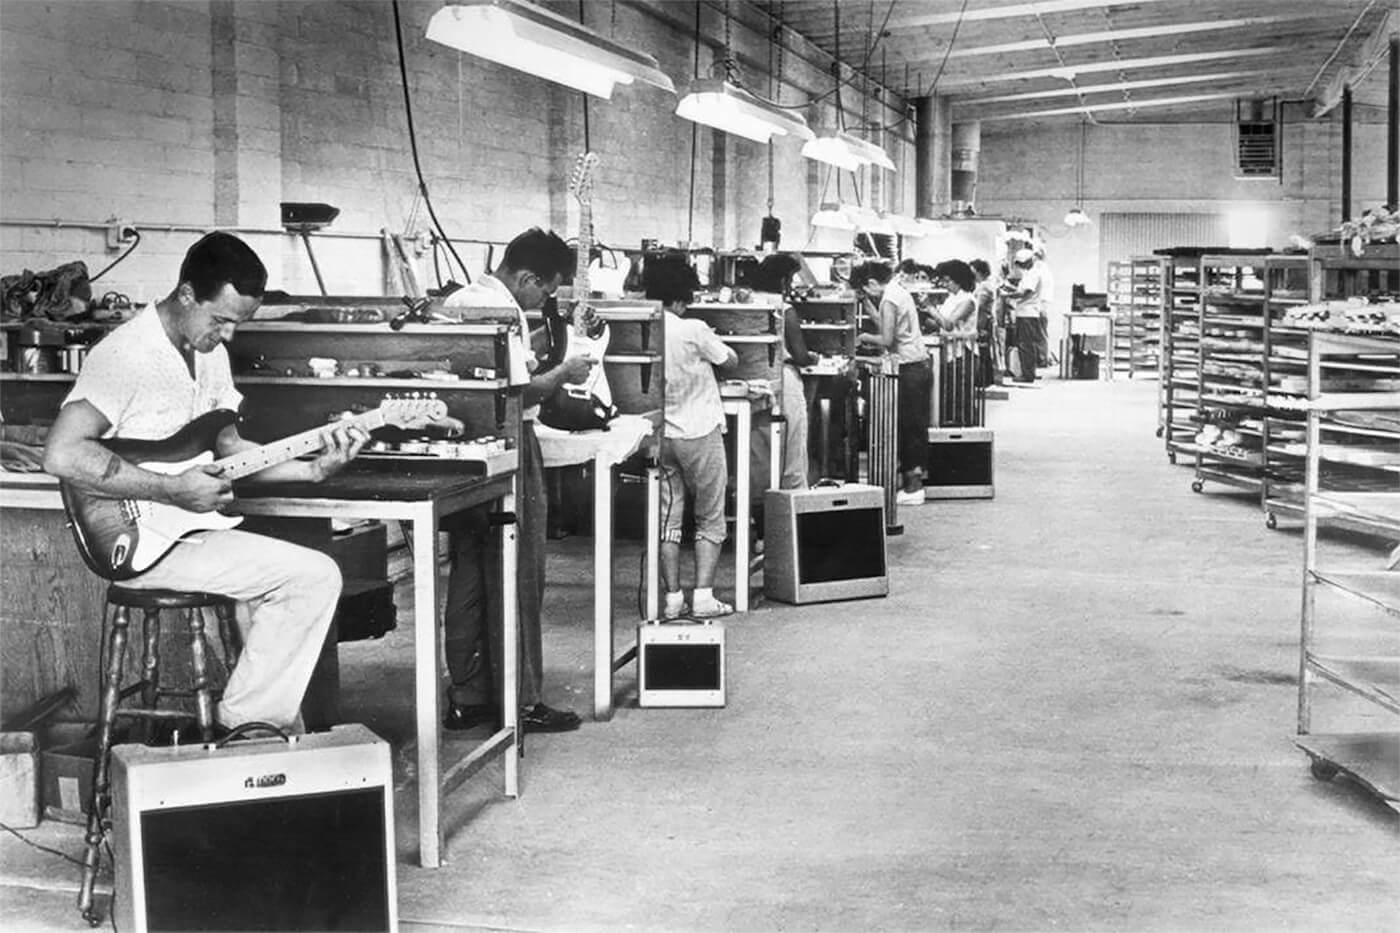 Fender Fullerton Factory Floor 1950s